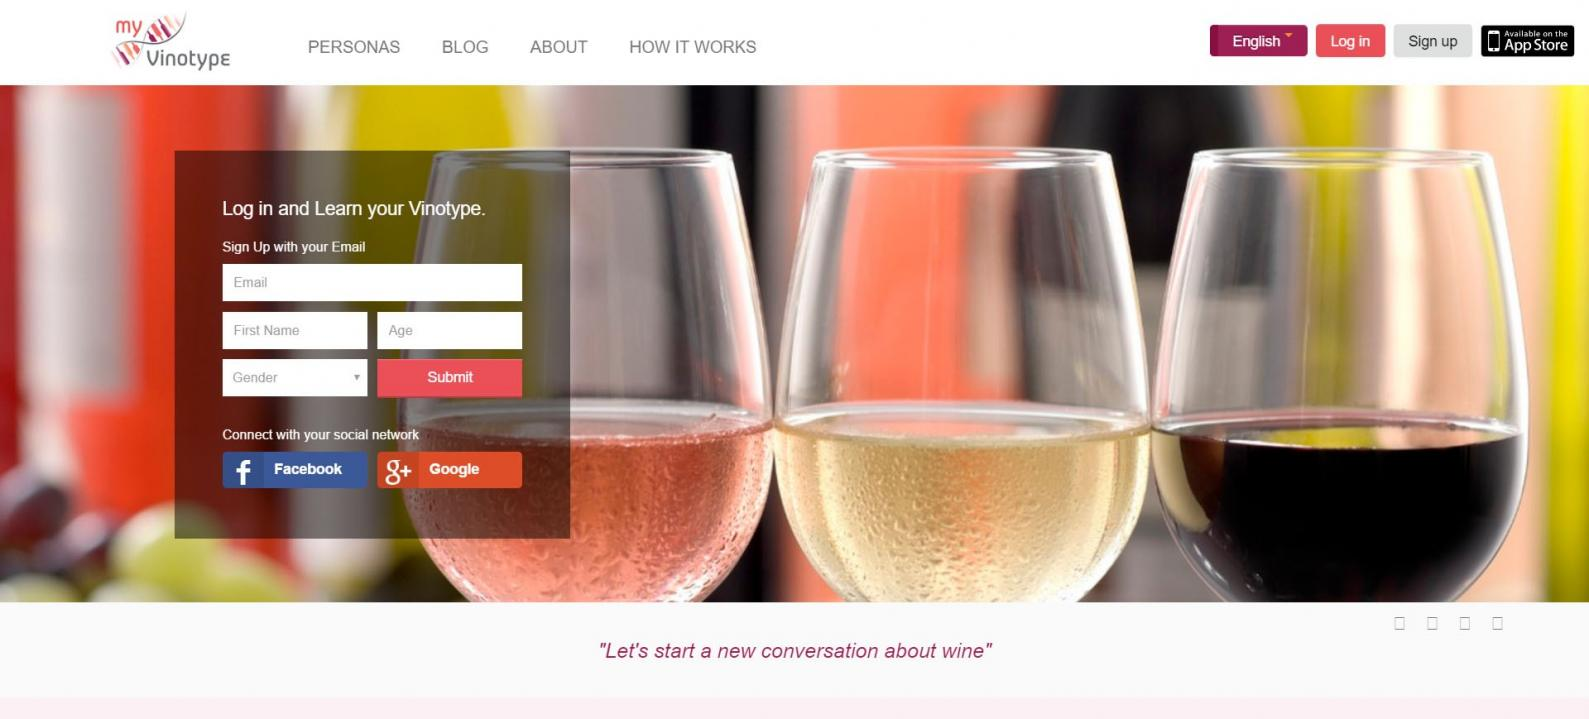 New Program Connects myVinotype.com to Your Website and Facebook Page